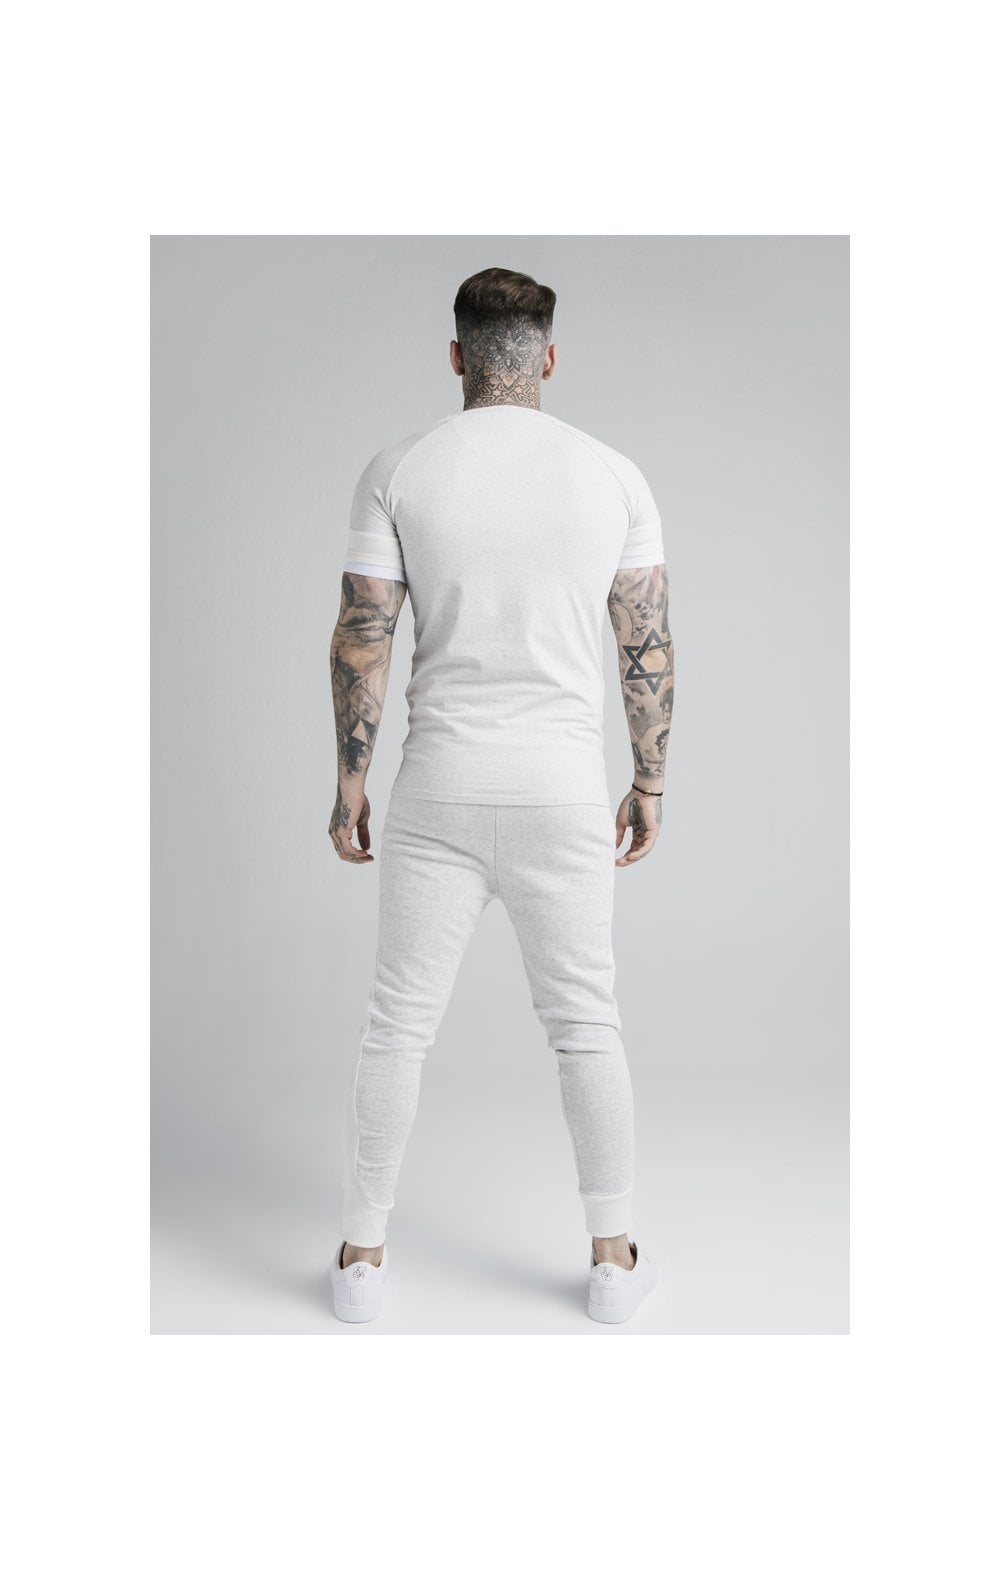 Load image into Gallery viewer, SikSilk Unite Rib Raglan Gym Tee - White (4)